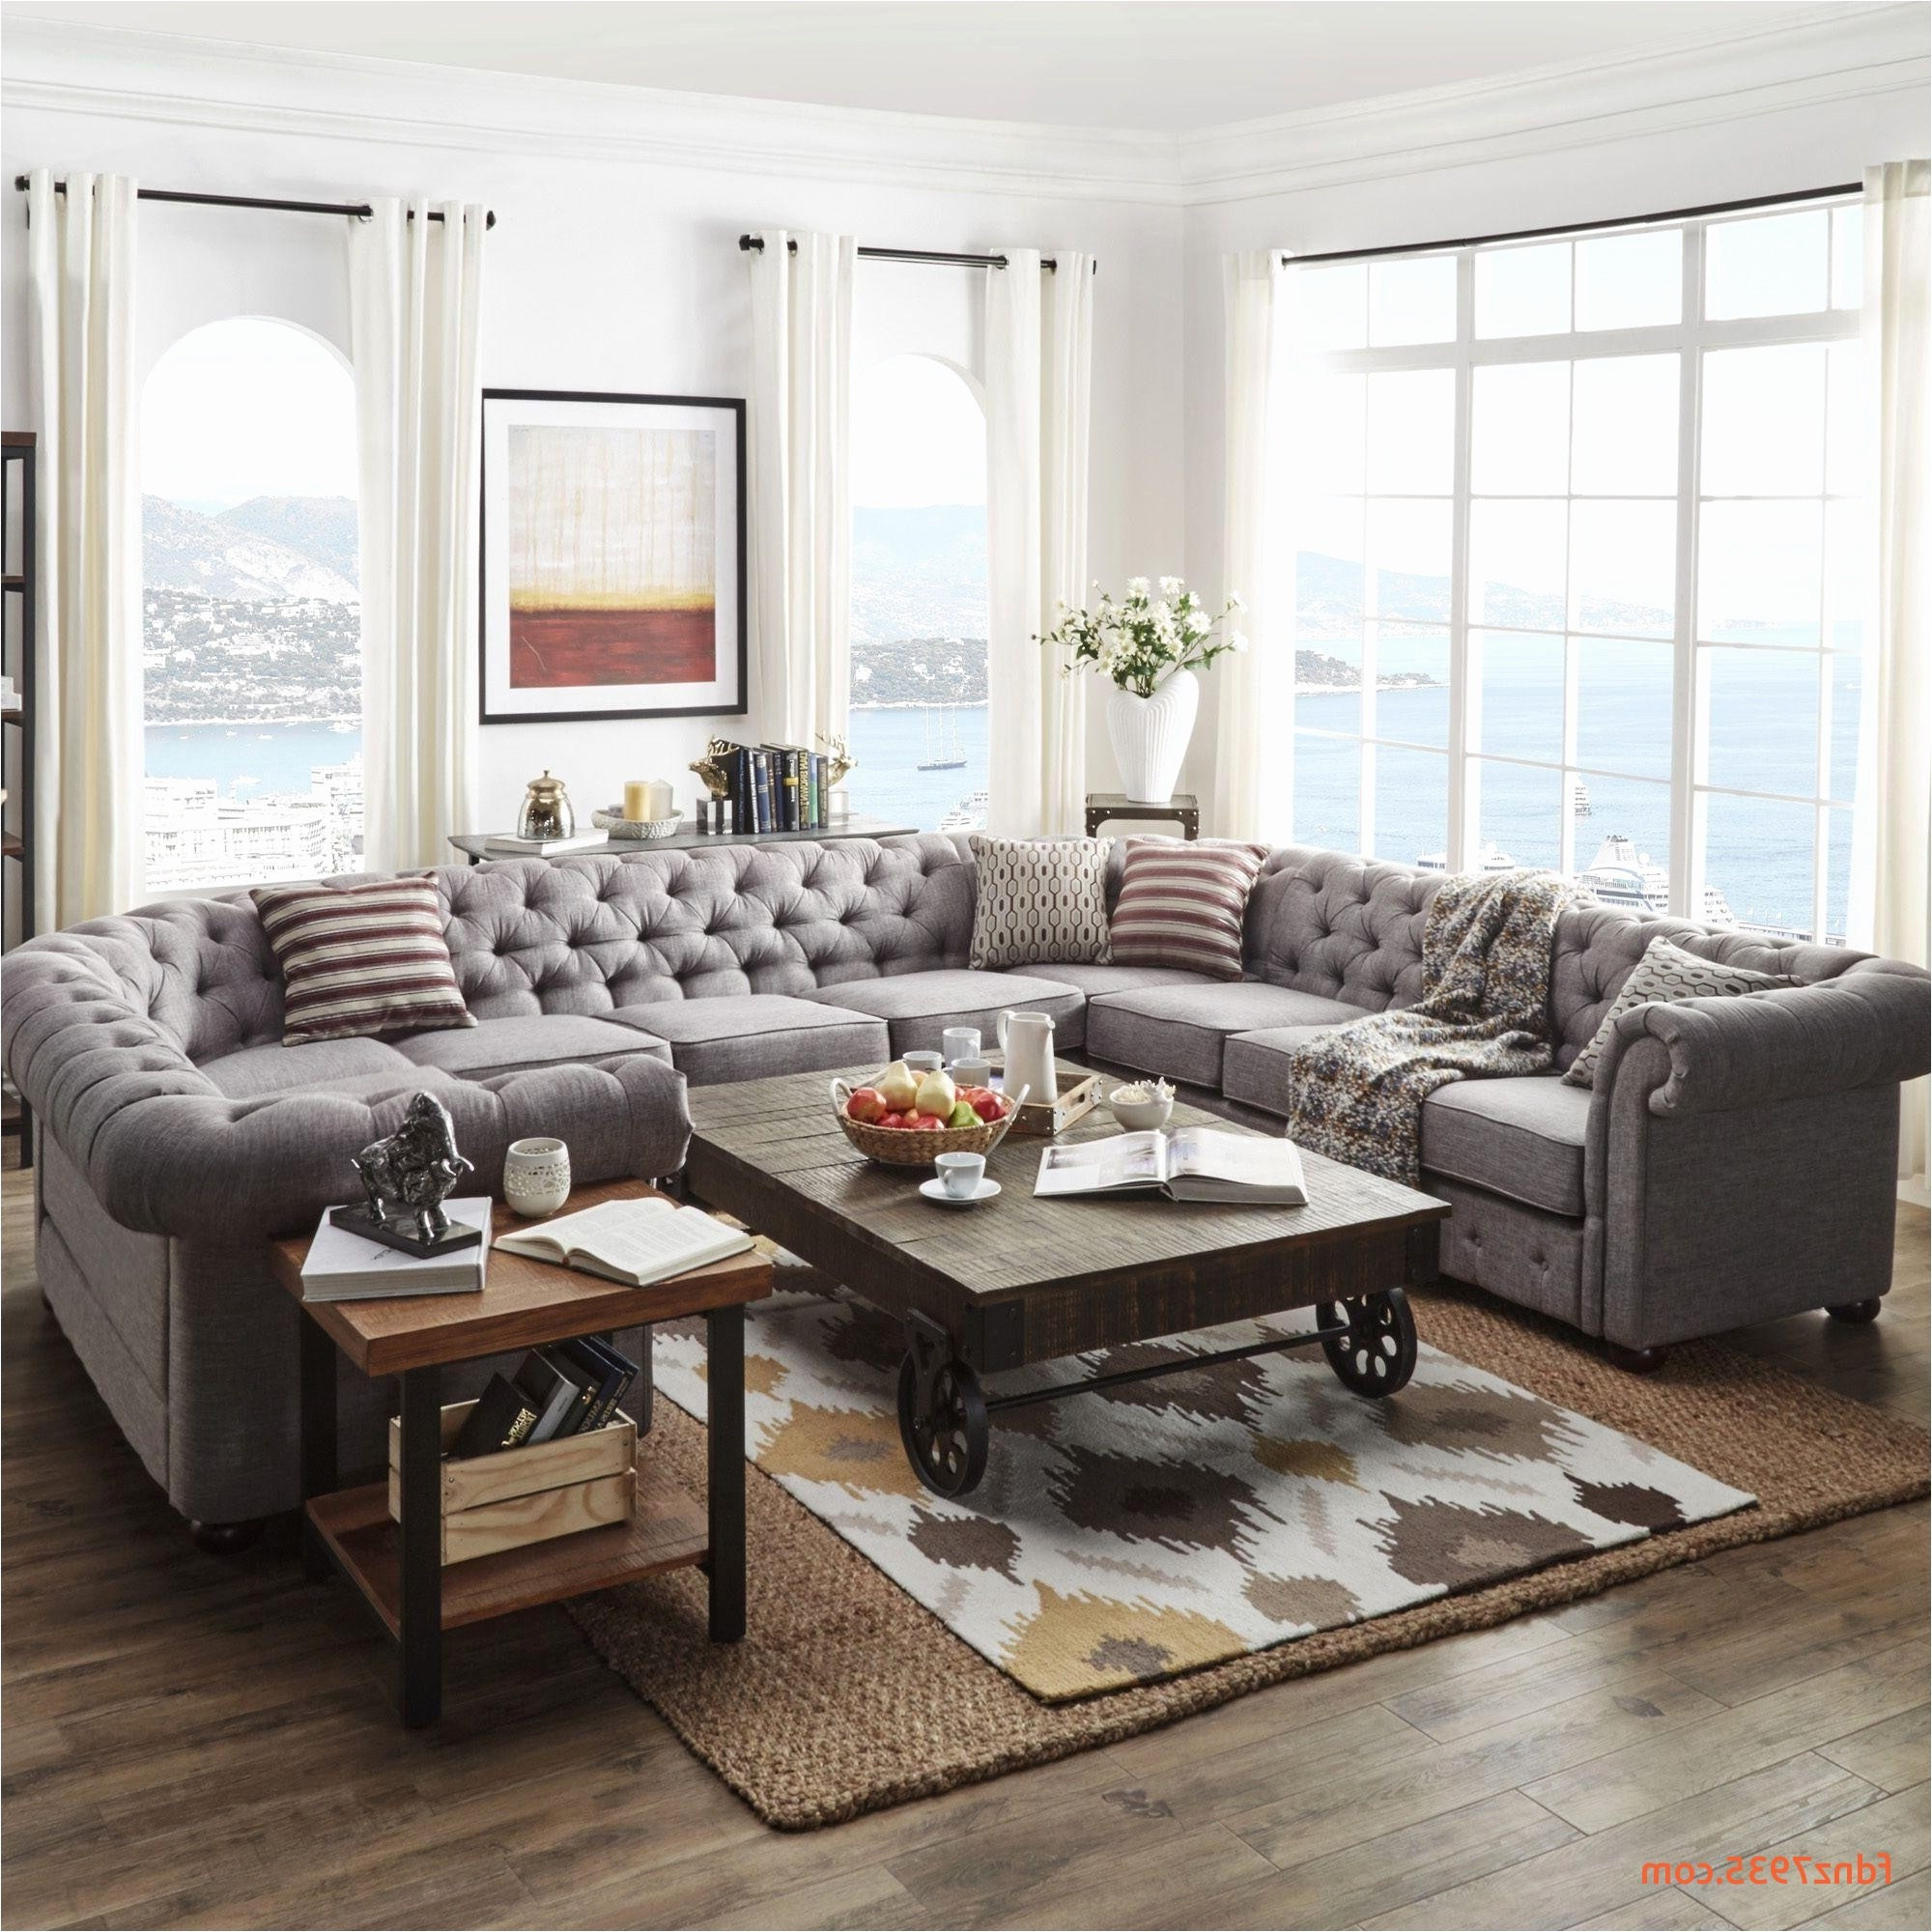 Best And Newest Round Sofa Chair Living Room Furniture Together Luxury Living Room Regarding Round Sofa Chair Living Room Furniture (View 10 of 20)